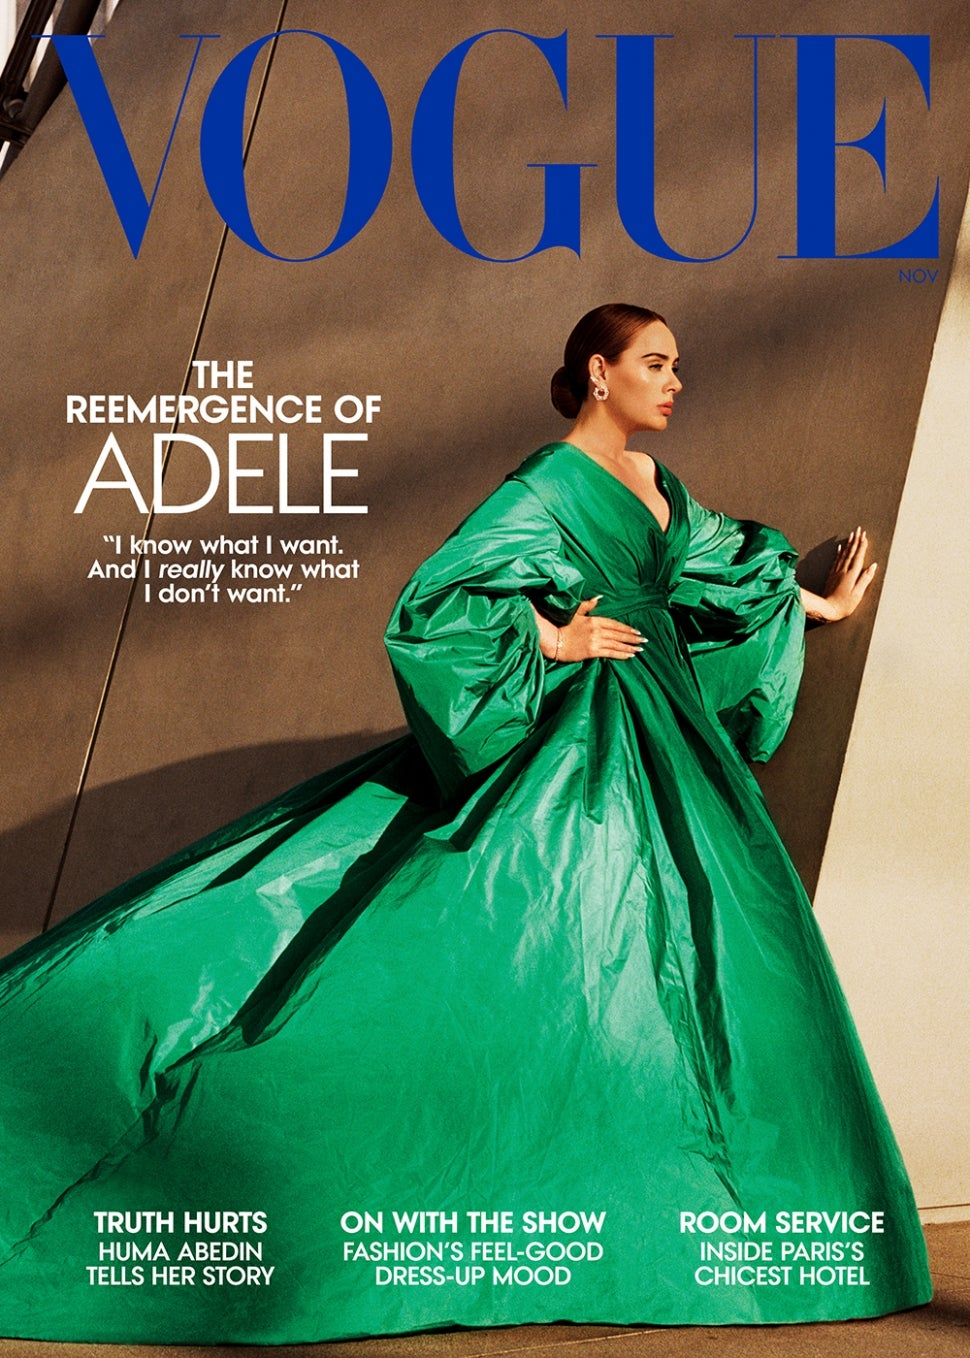 Adele covers the November issues of American and British Vogues